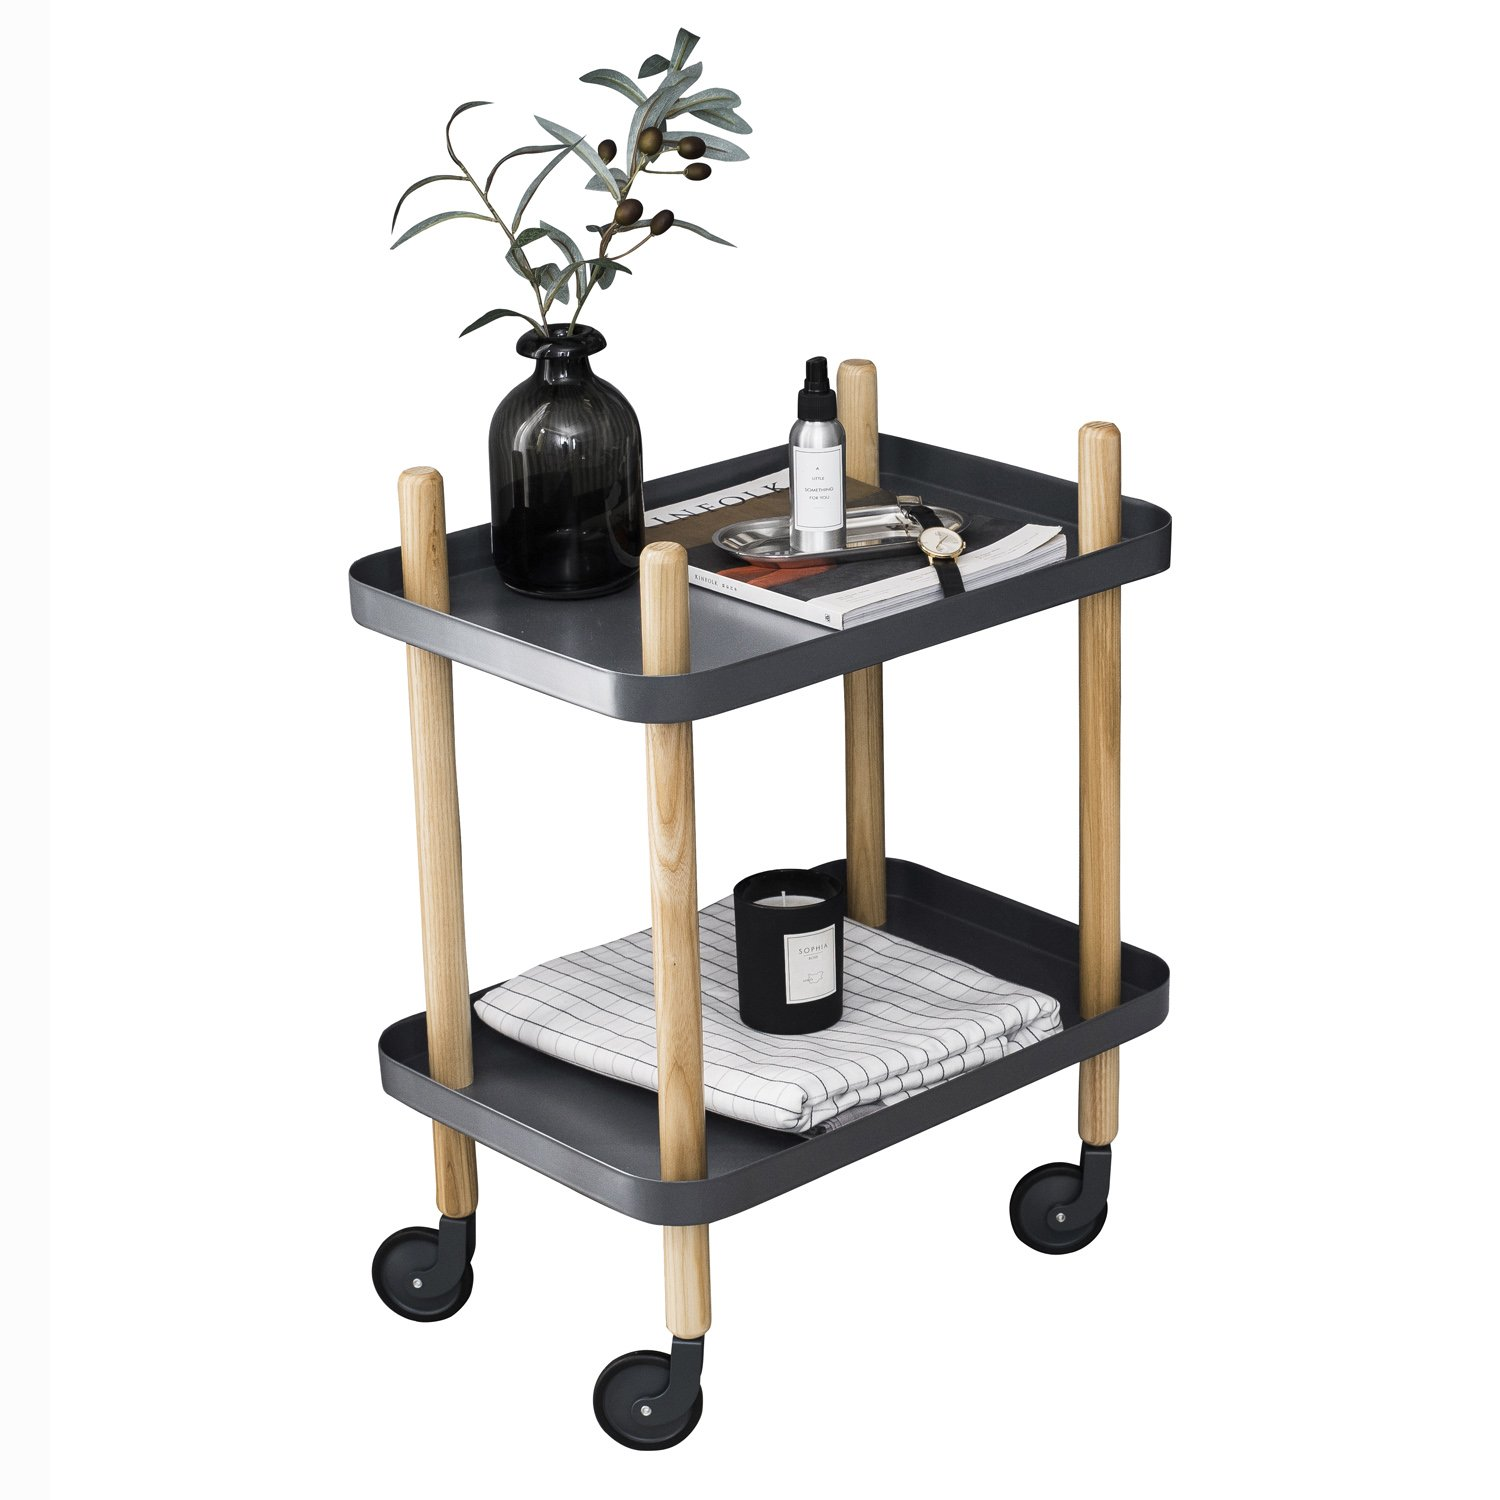 Sofa Side Table with wheels, Metal Tray End Table Living Room Bedroom, 2-Tier Nightstand Utility Rolling Cart, Gray